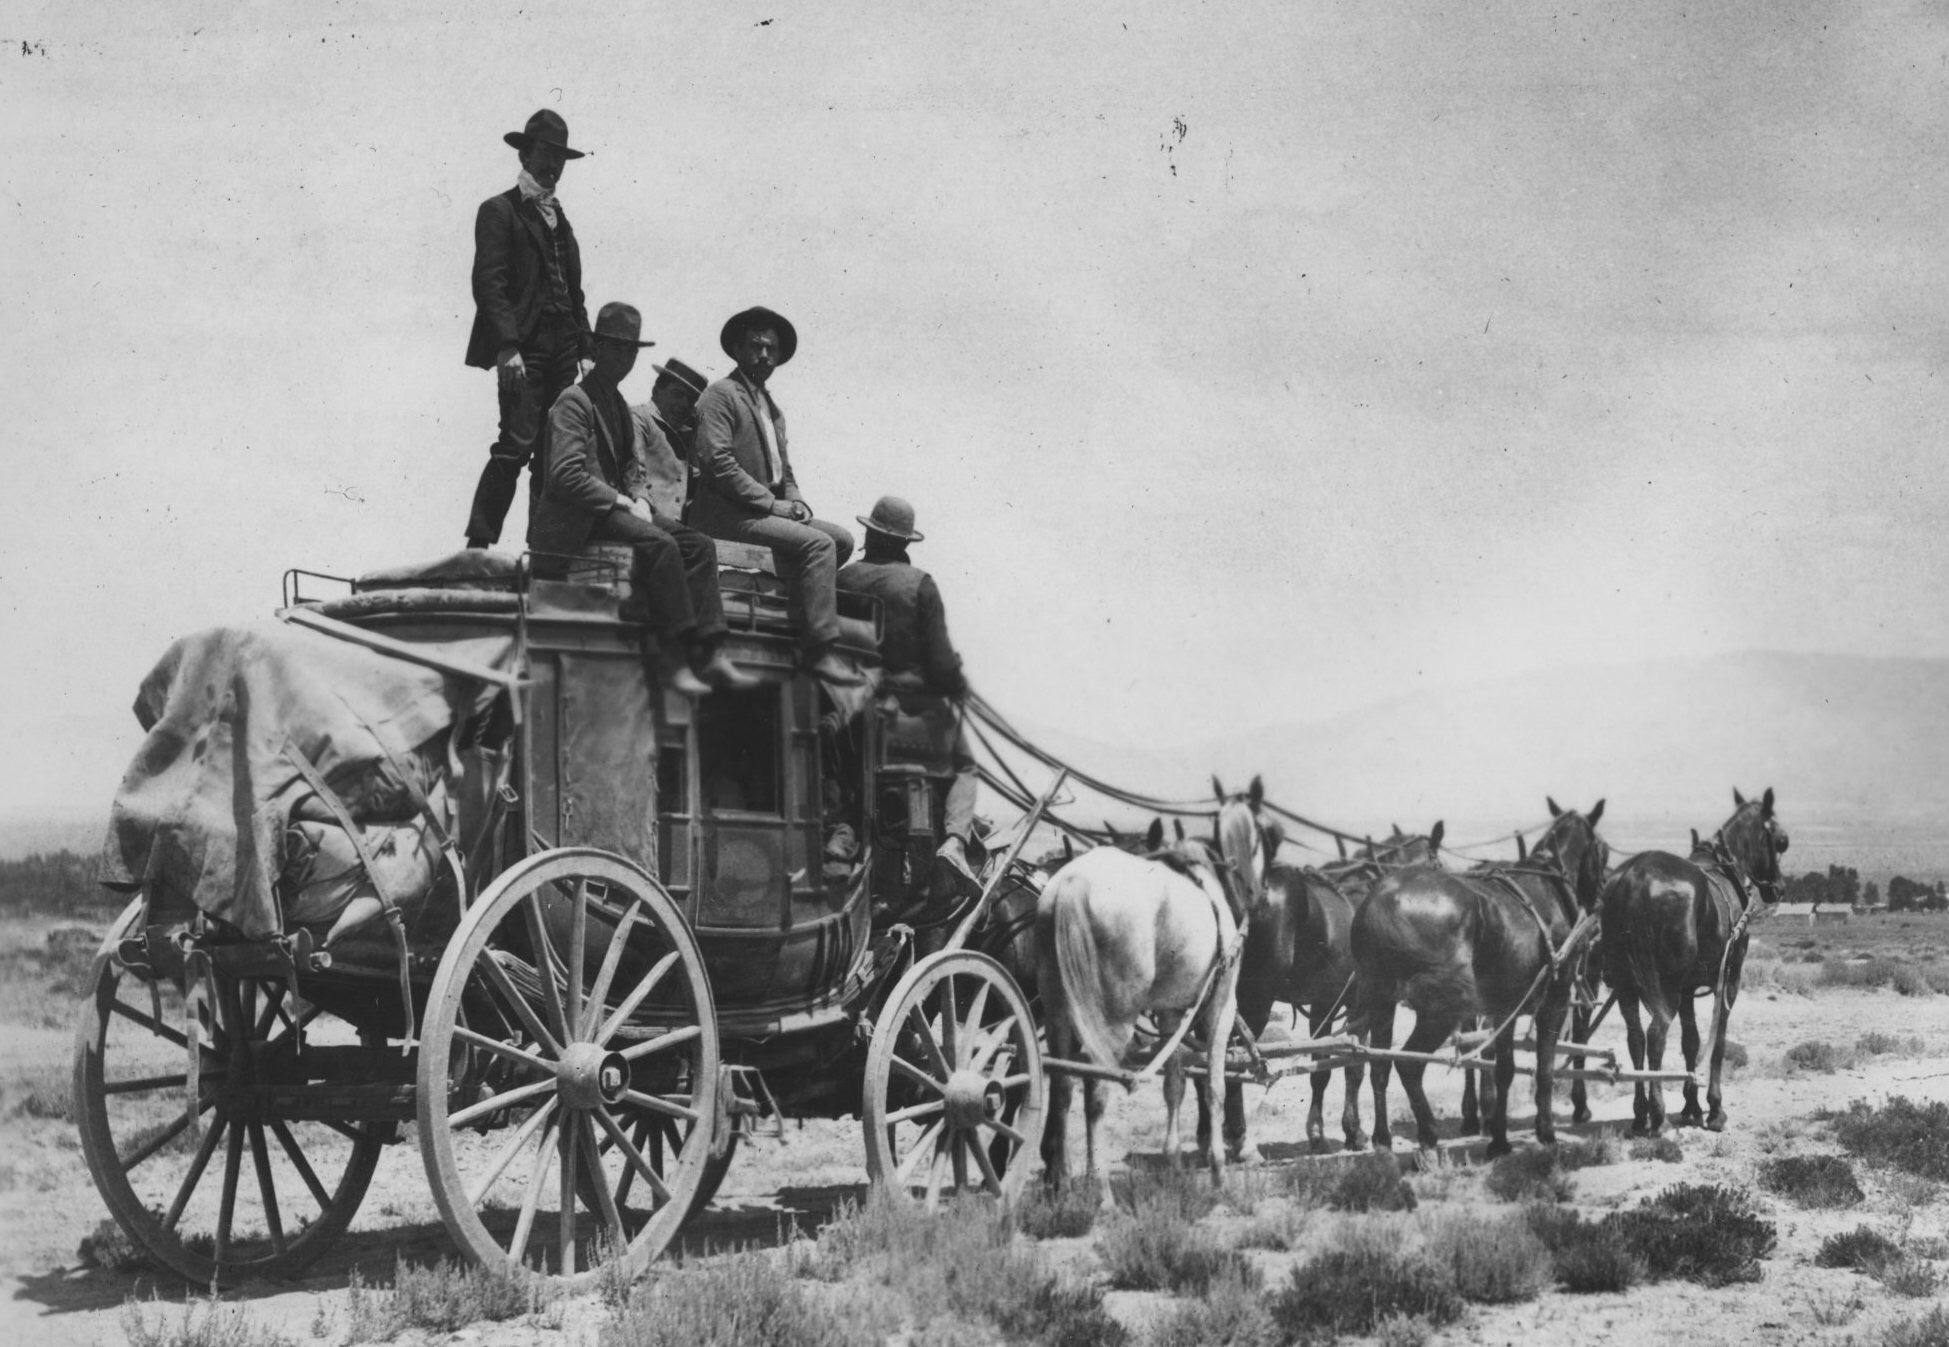 Stagecoach similar to what would have been used on the Butterfield Overland Mail Trail